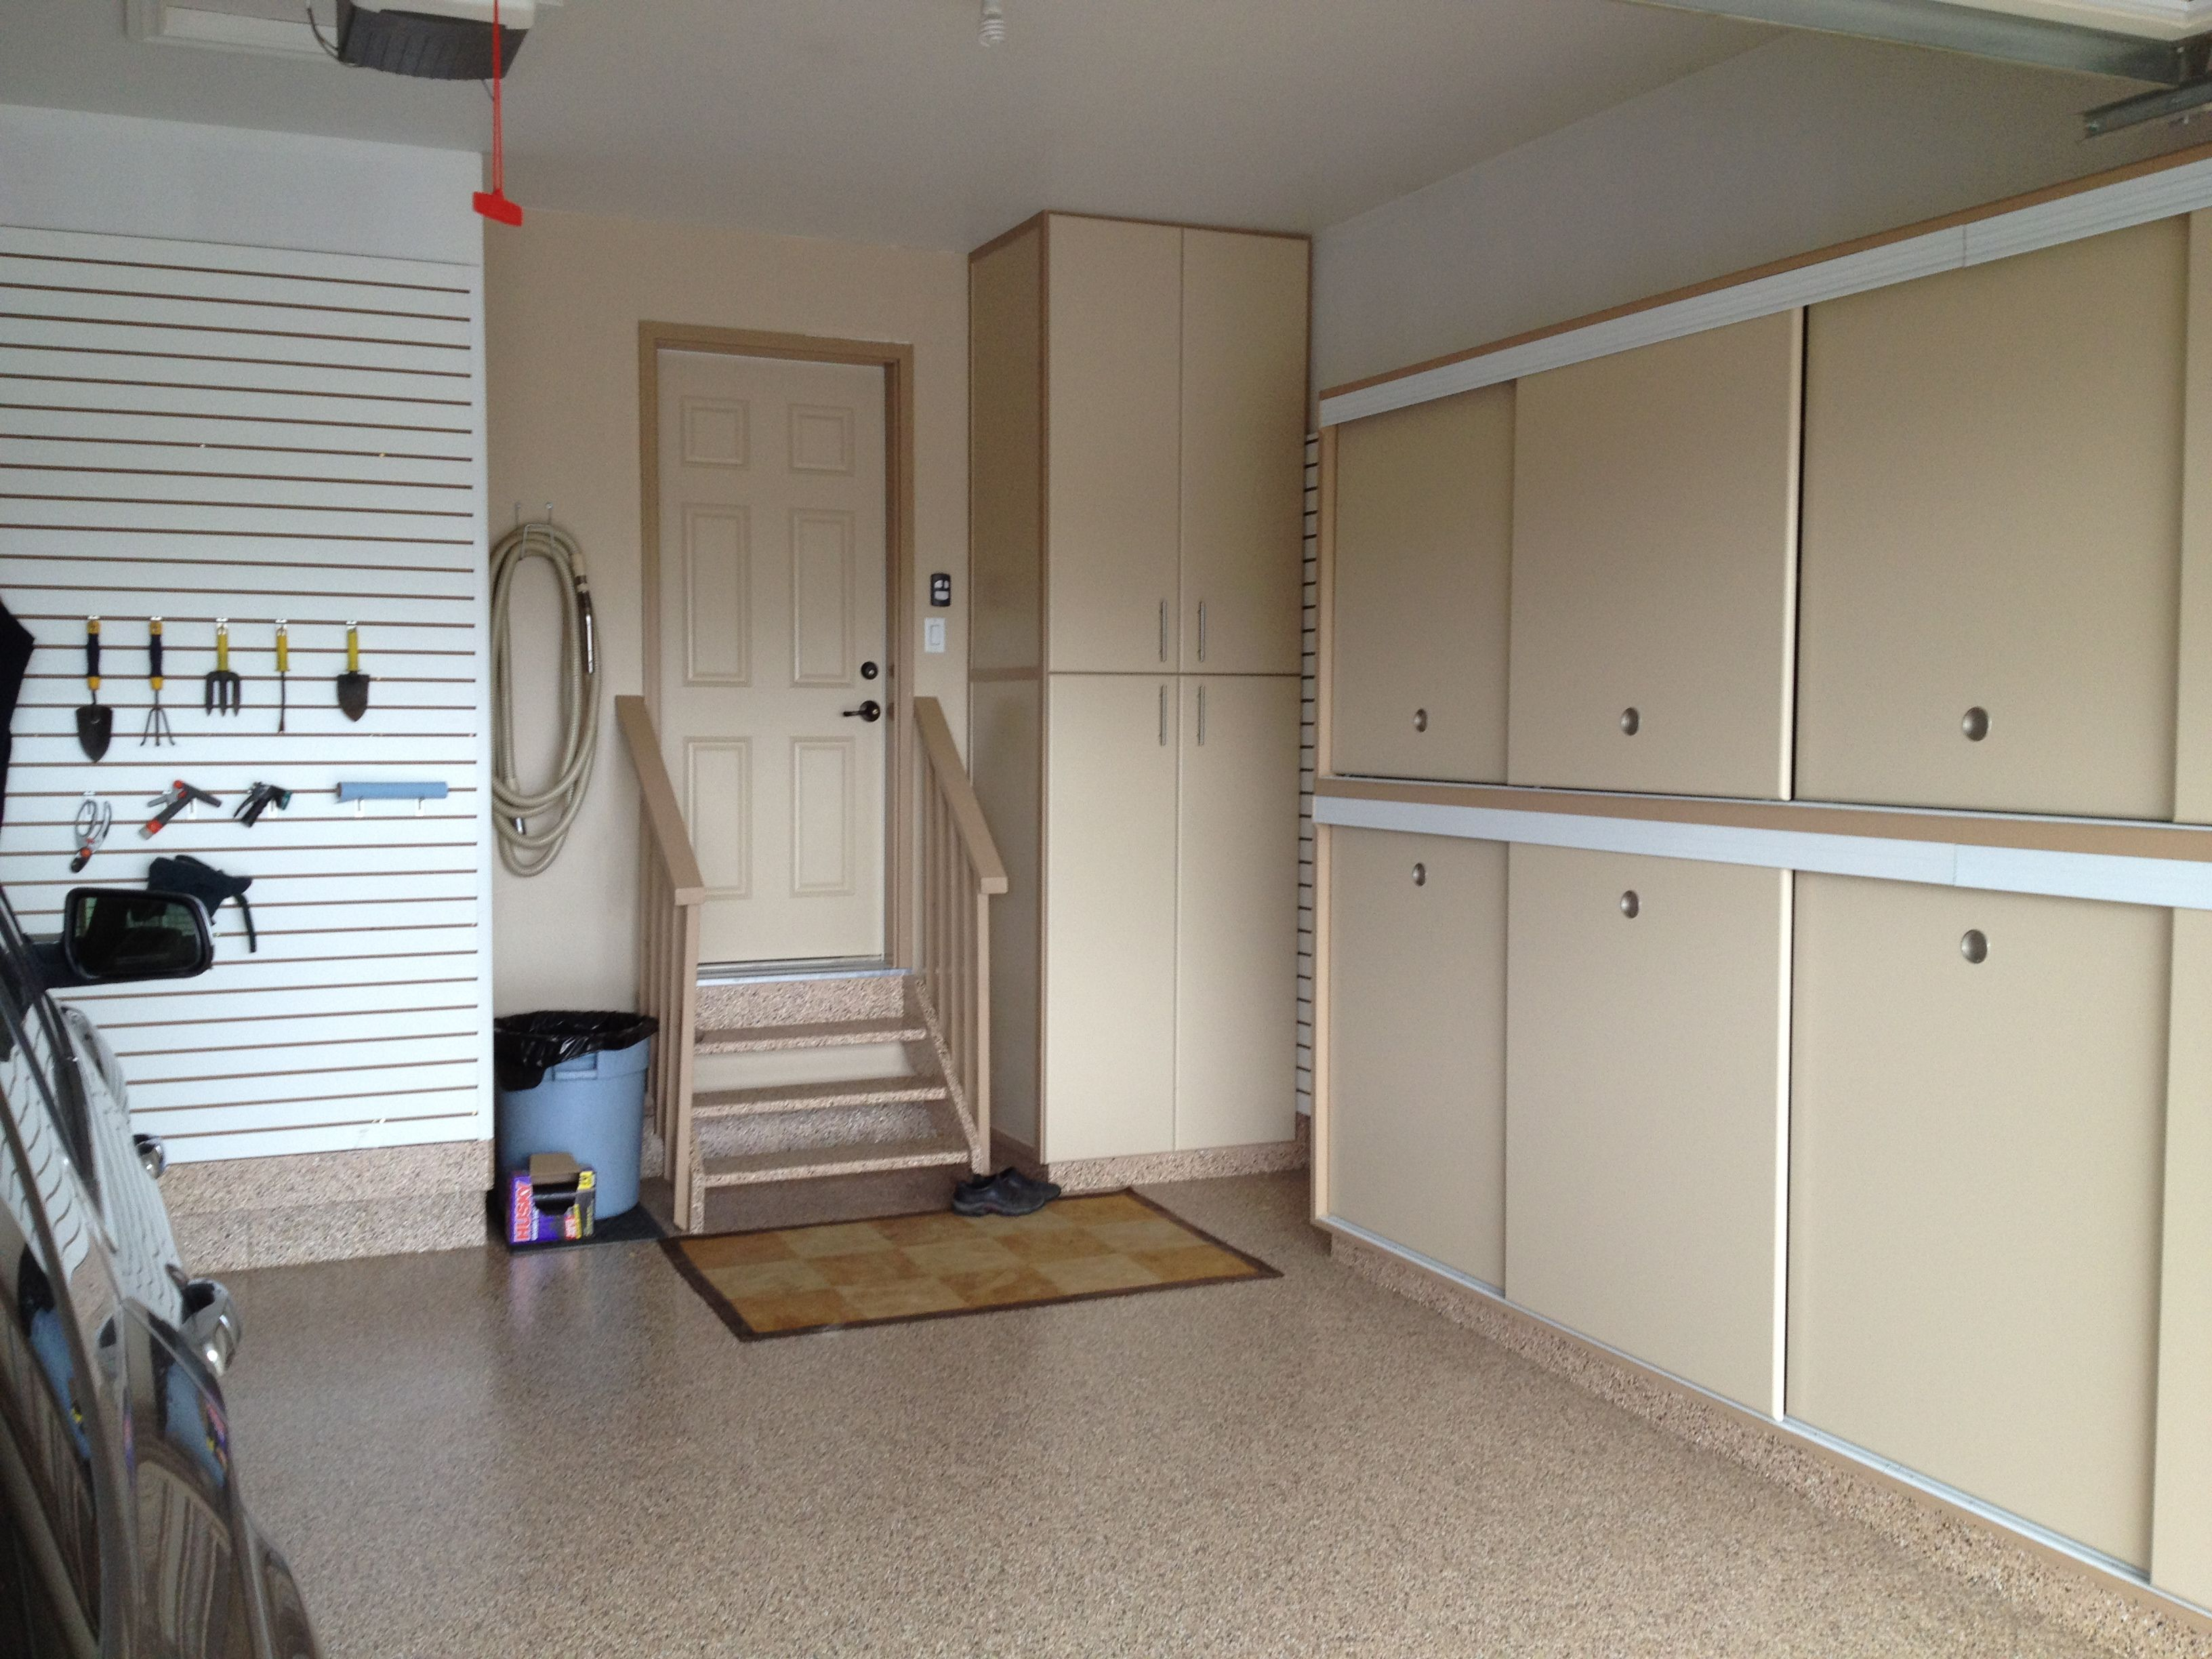 workshop furniture system solutions tool home workbench depot metal organization cabinets best affordable systems tidy with wooden prefabricated shop doors shelves storage garage